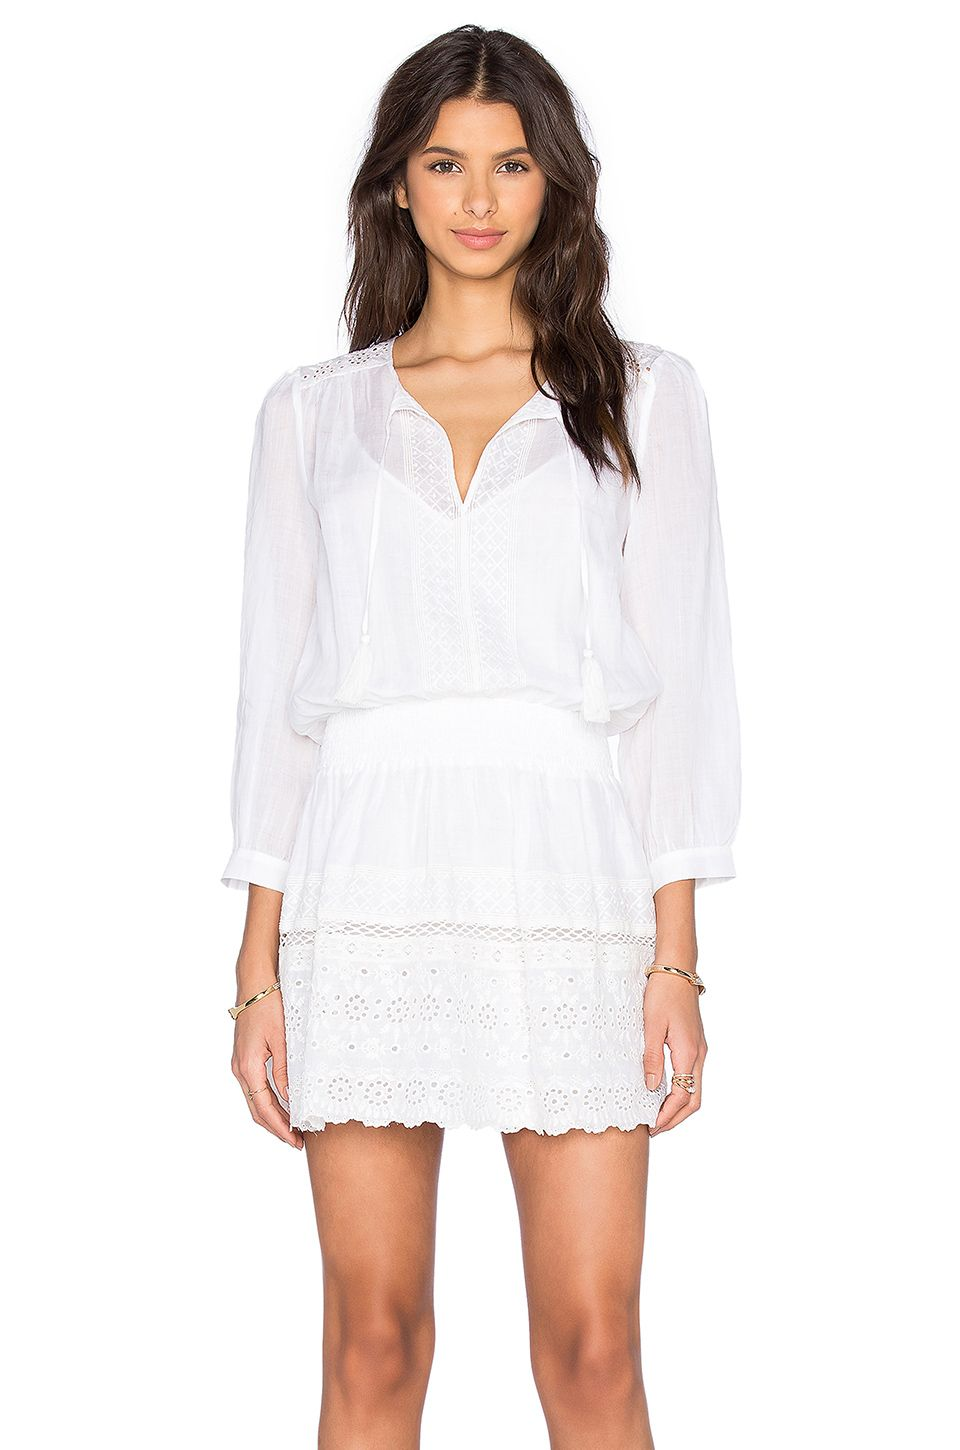 0aaac7981e7 Joie White Dress Sale for Indian Summer Days